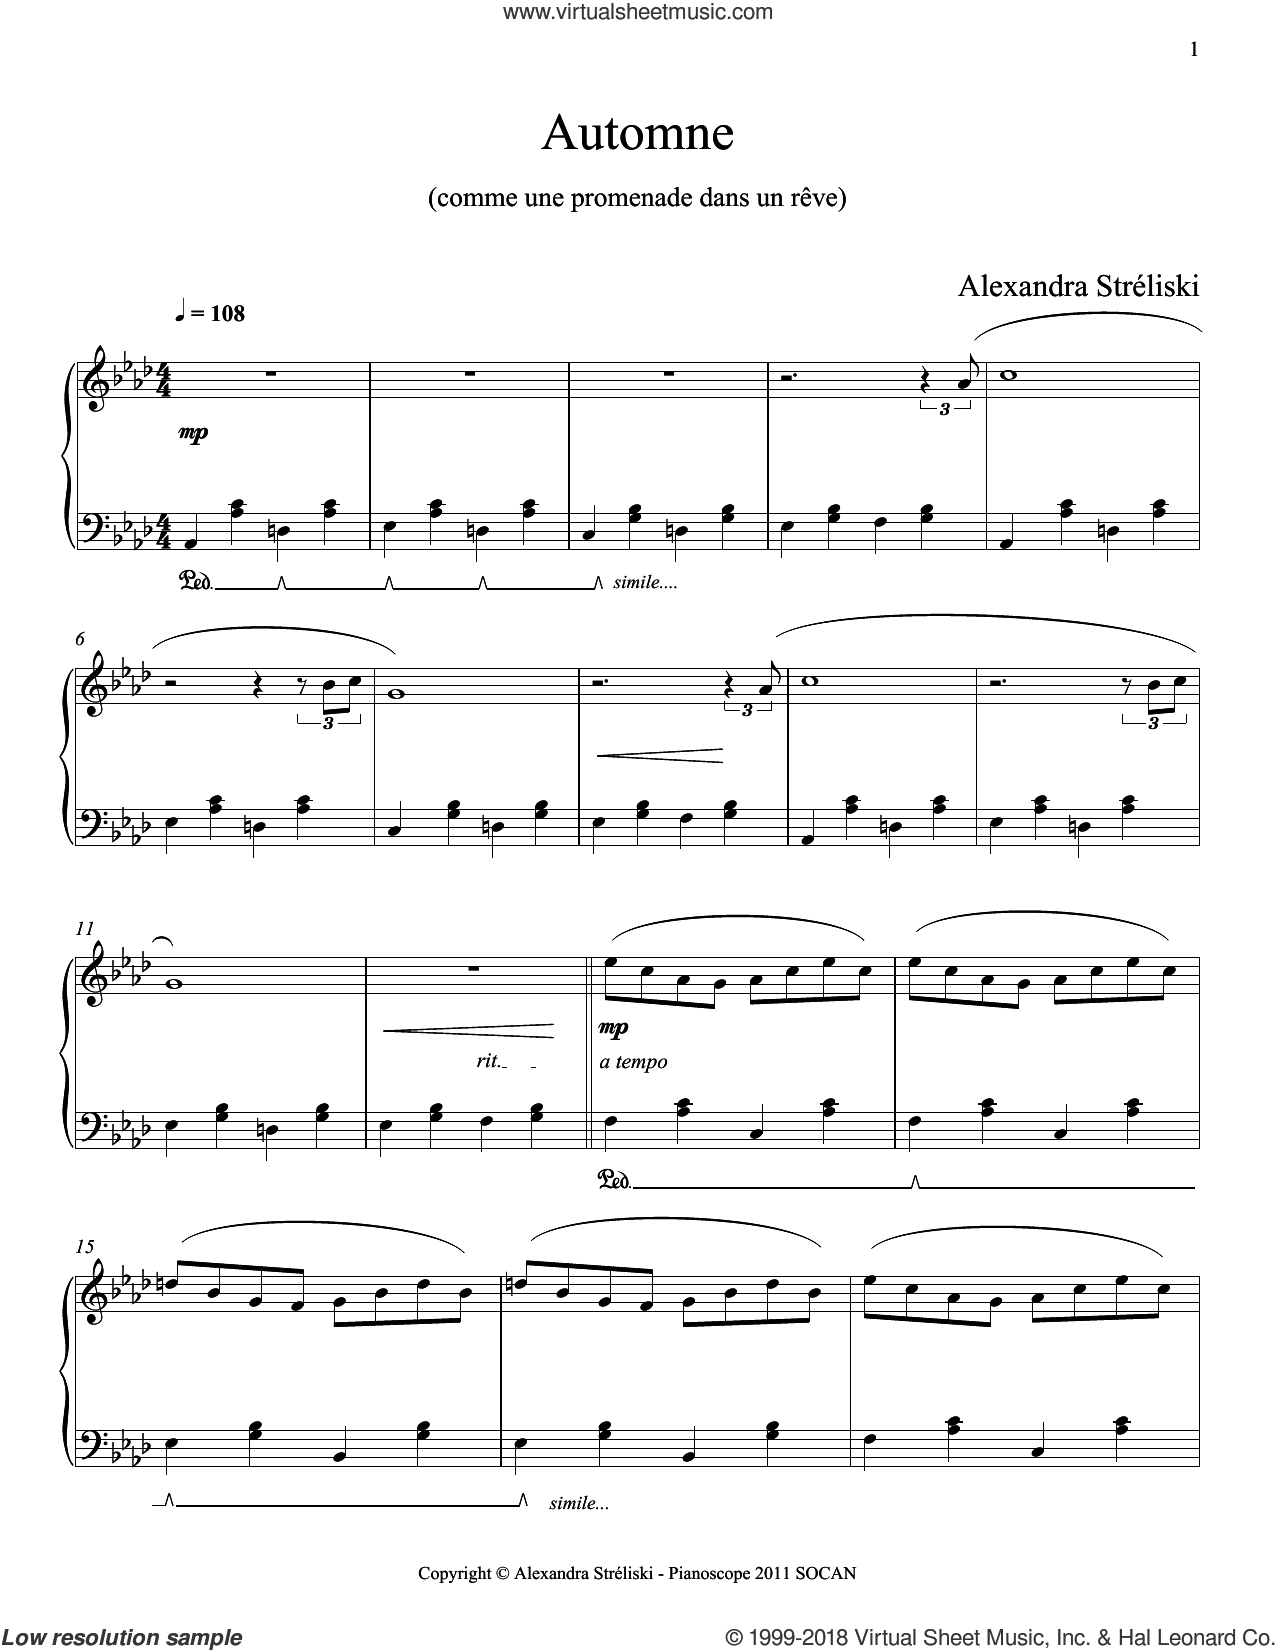 Automne sheet music for piano solo by Alexandra Streliski, classical score, intermediate skill level